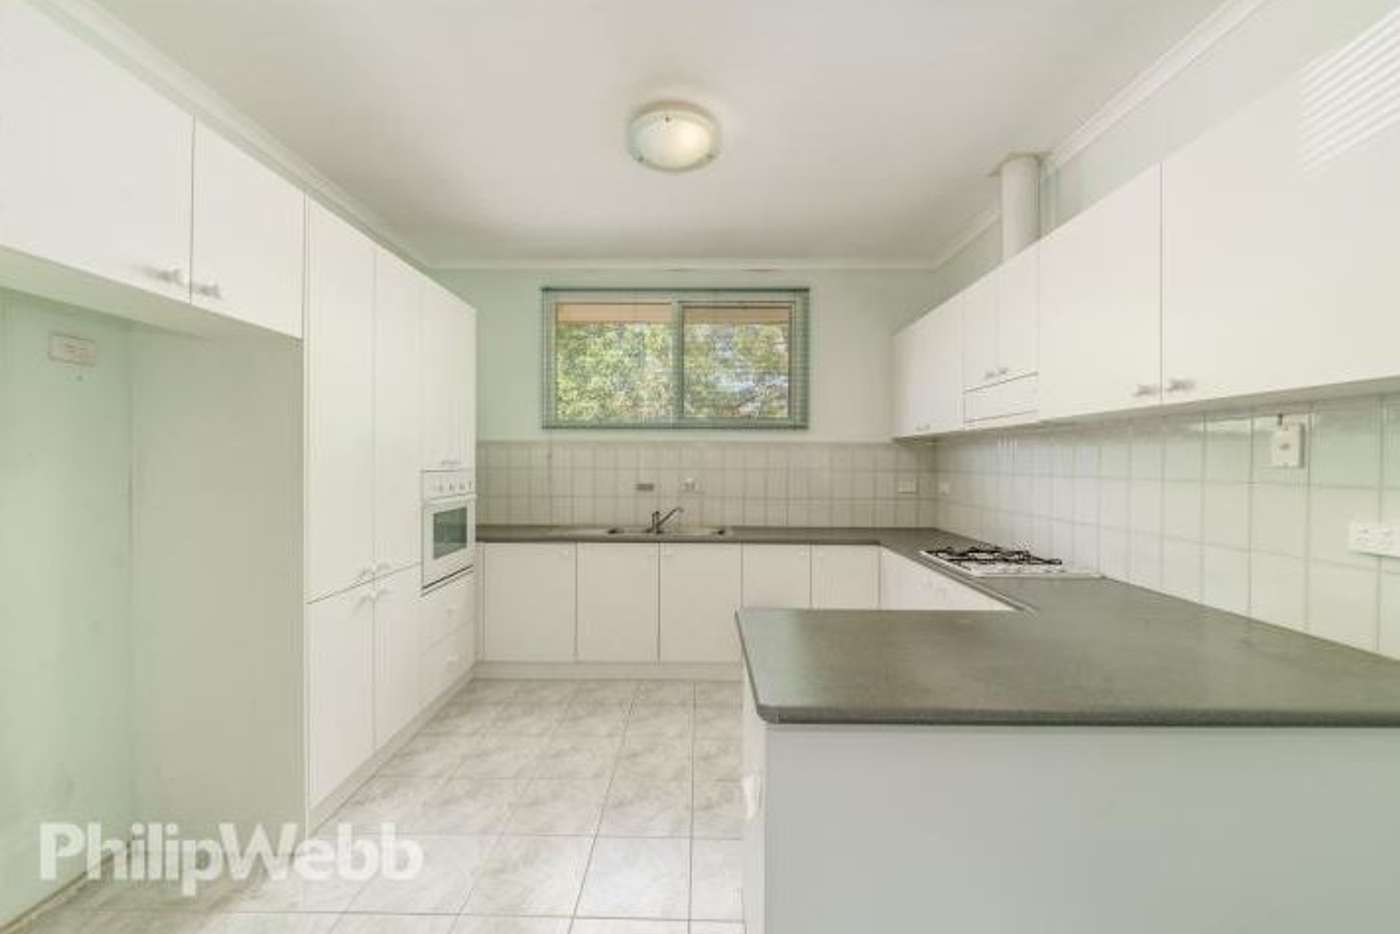 Main view of Homely unit listing, 1/38 Mcdowall Street, Mitcham VIC 3132